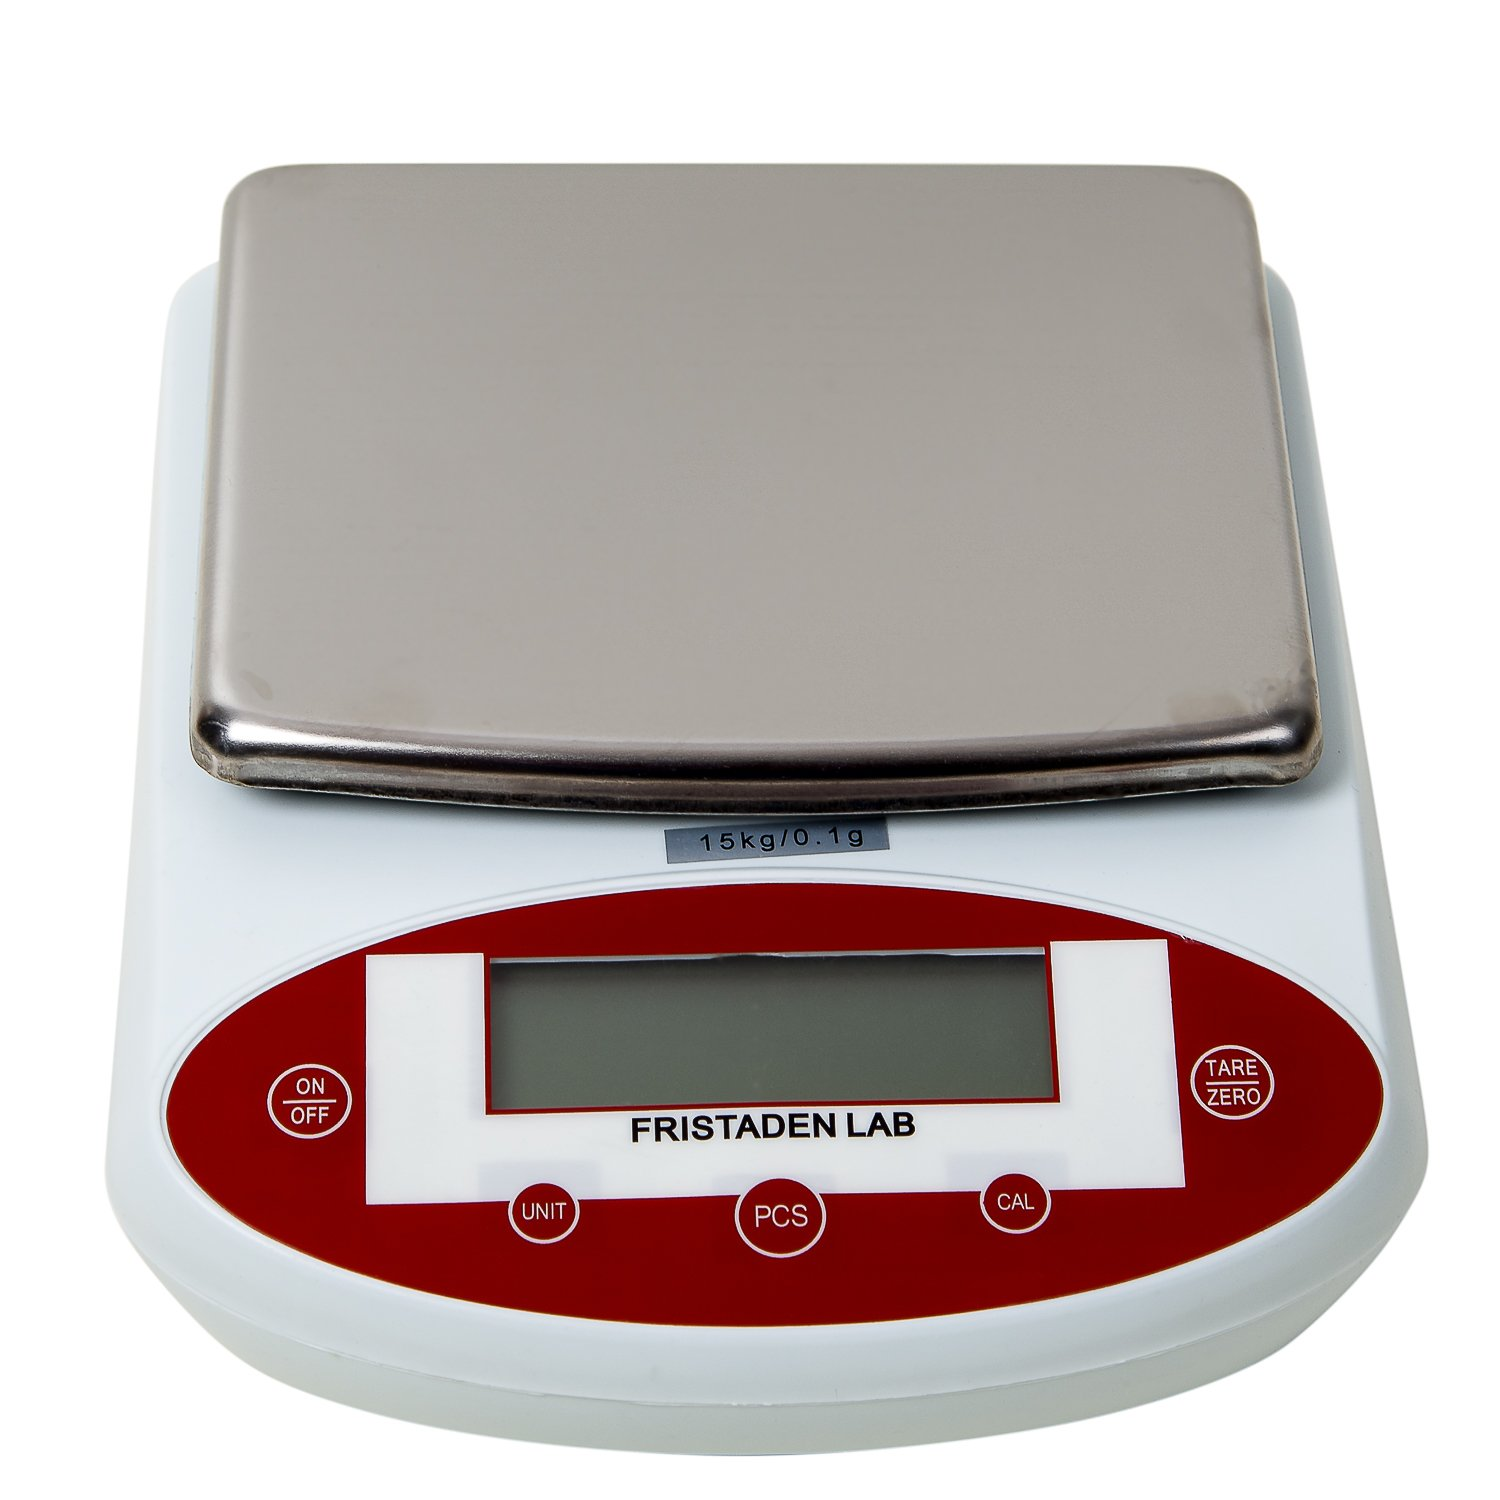 Fristaden Lab Digital Analytical Precision Balance, 15kg x 0.1g Weight Accuracy. The Self-Calibrating Precision Scale Measures in Grams, Ounces and Carats with LCD Display